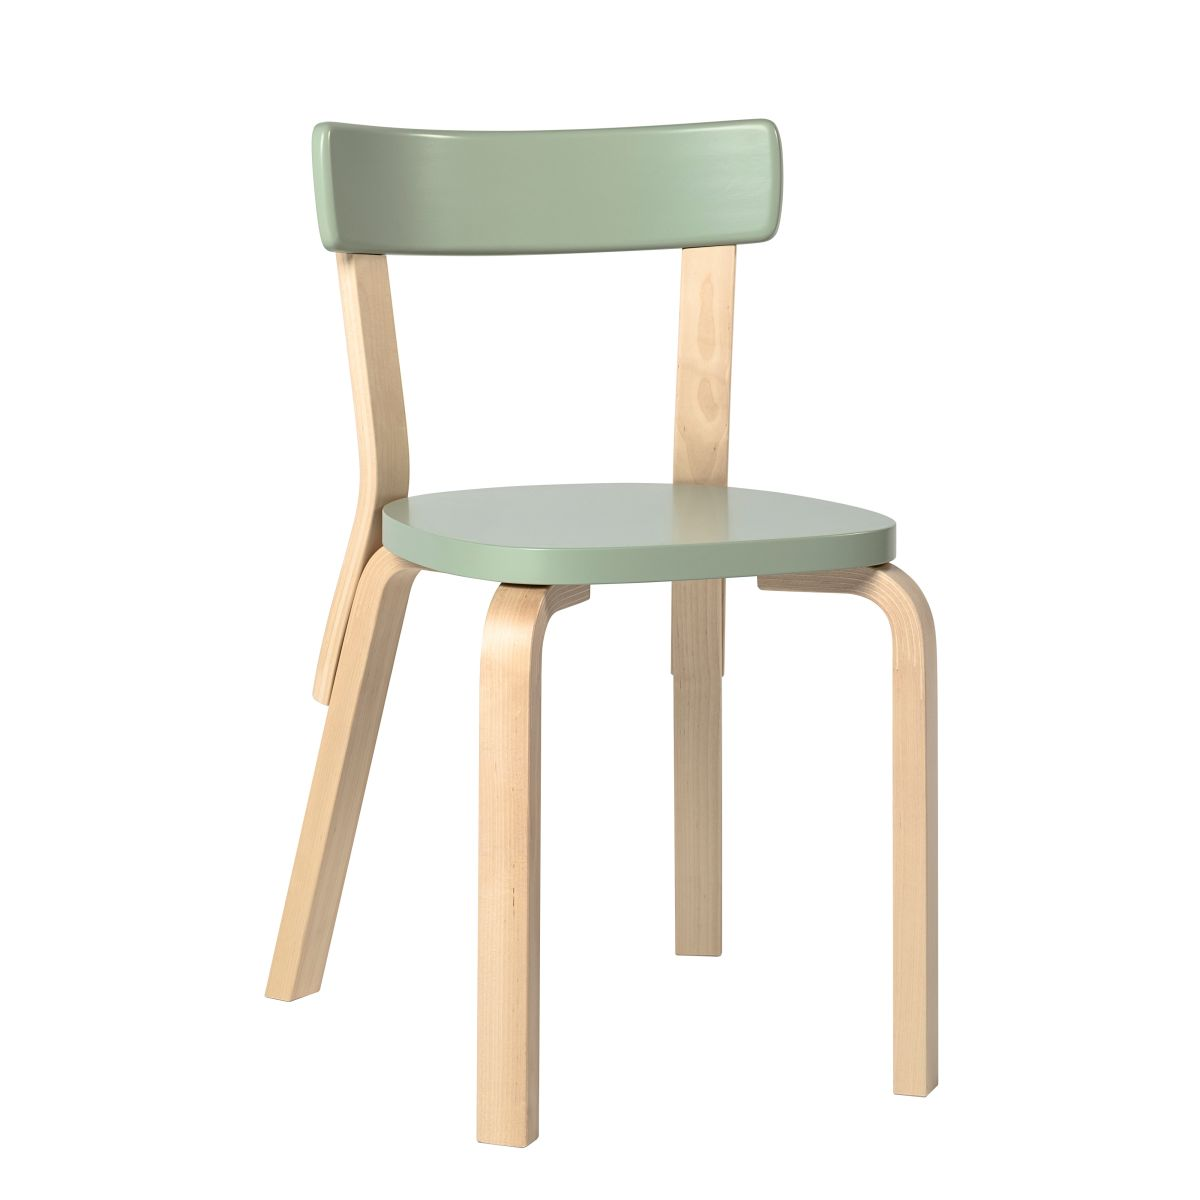 Chair-69-Green-Lacquer-Seat